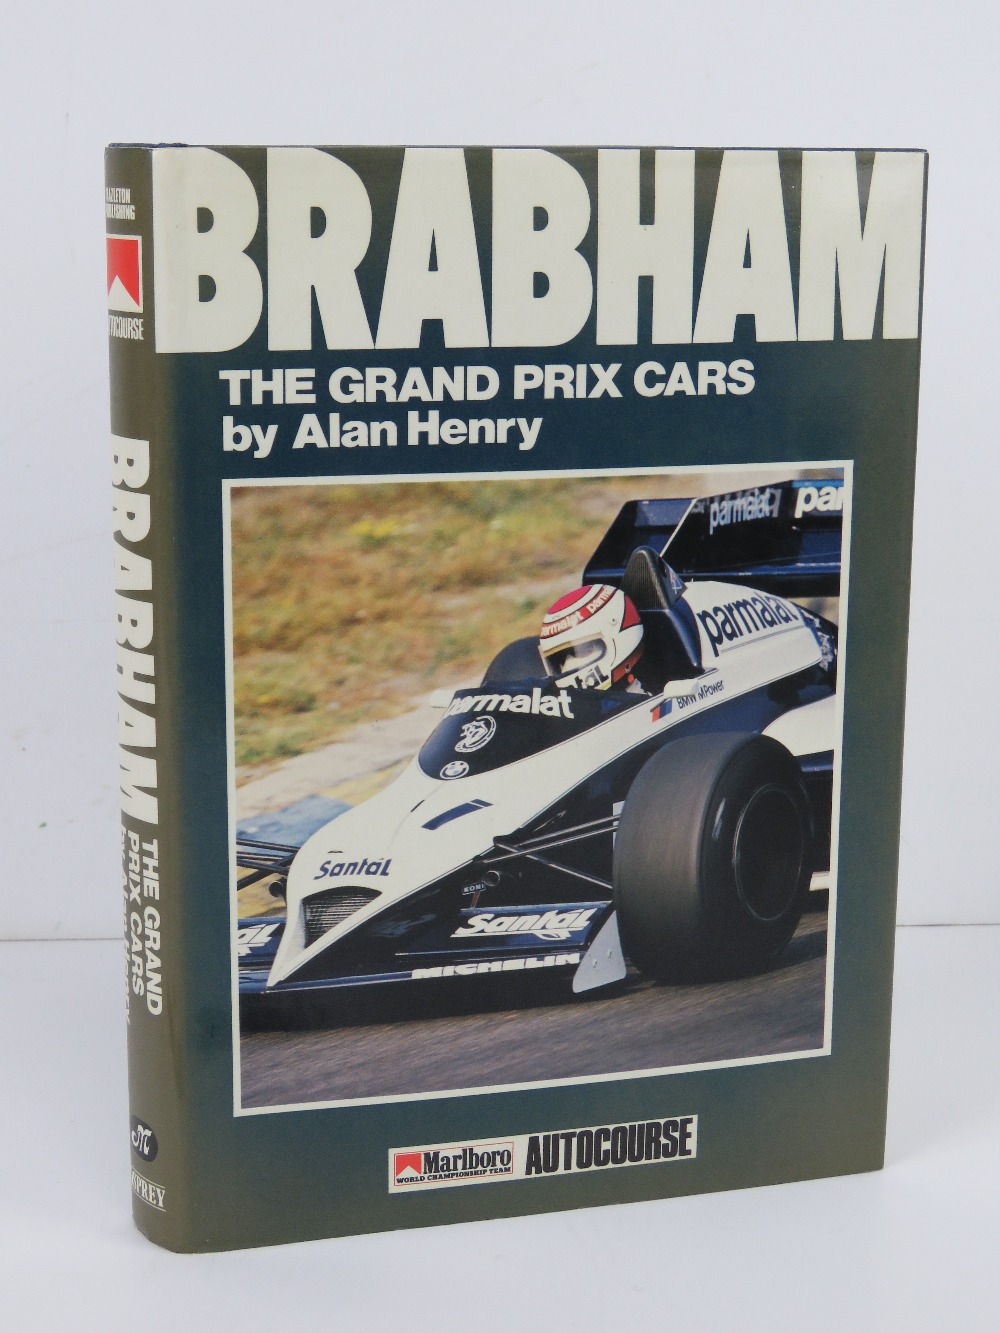 Brabham The Grand Prix Cars by Alan Henry. Published 1985, first edition. Hardback book.